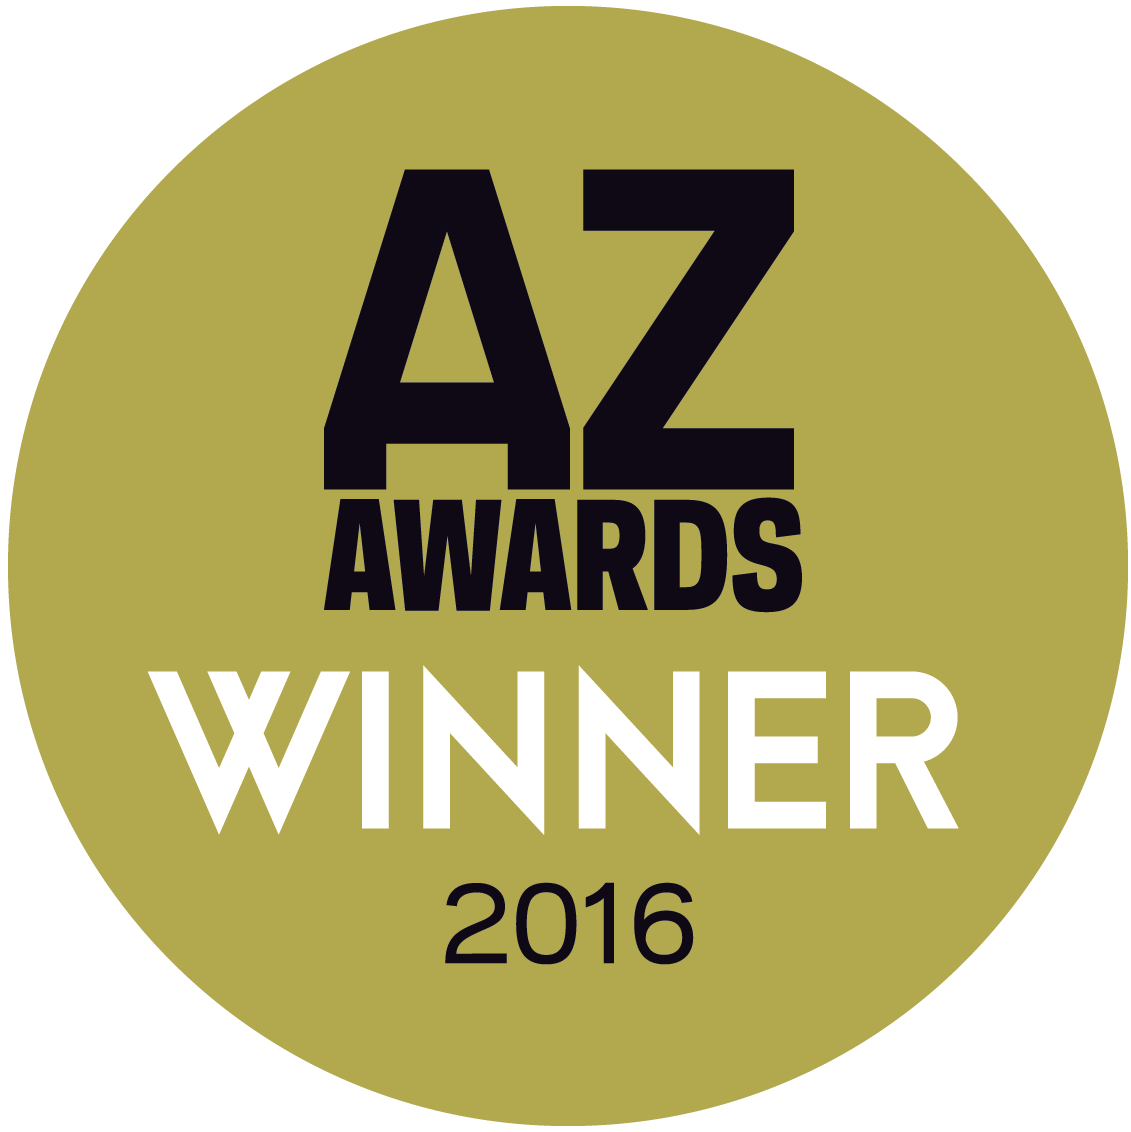 Az awards winner 2016